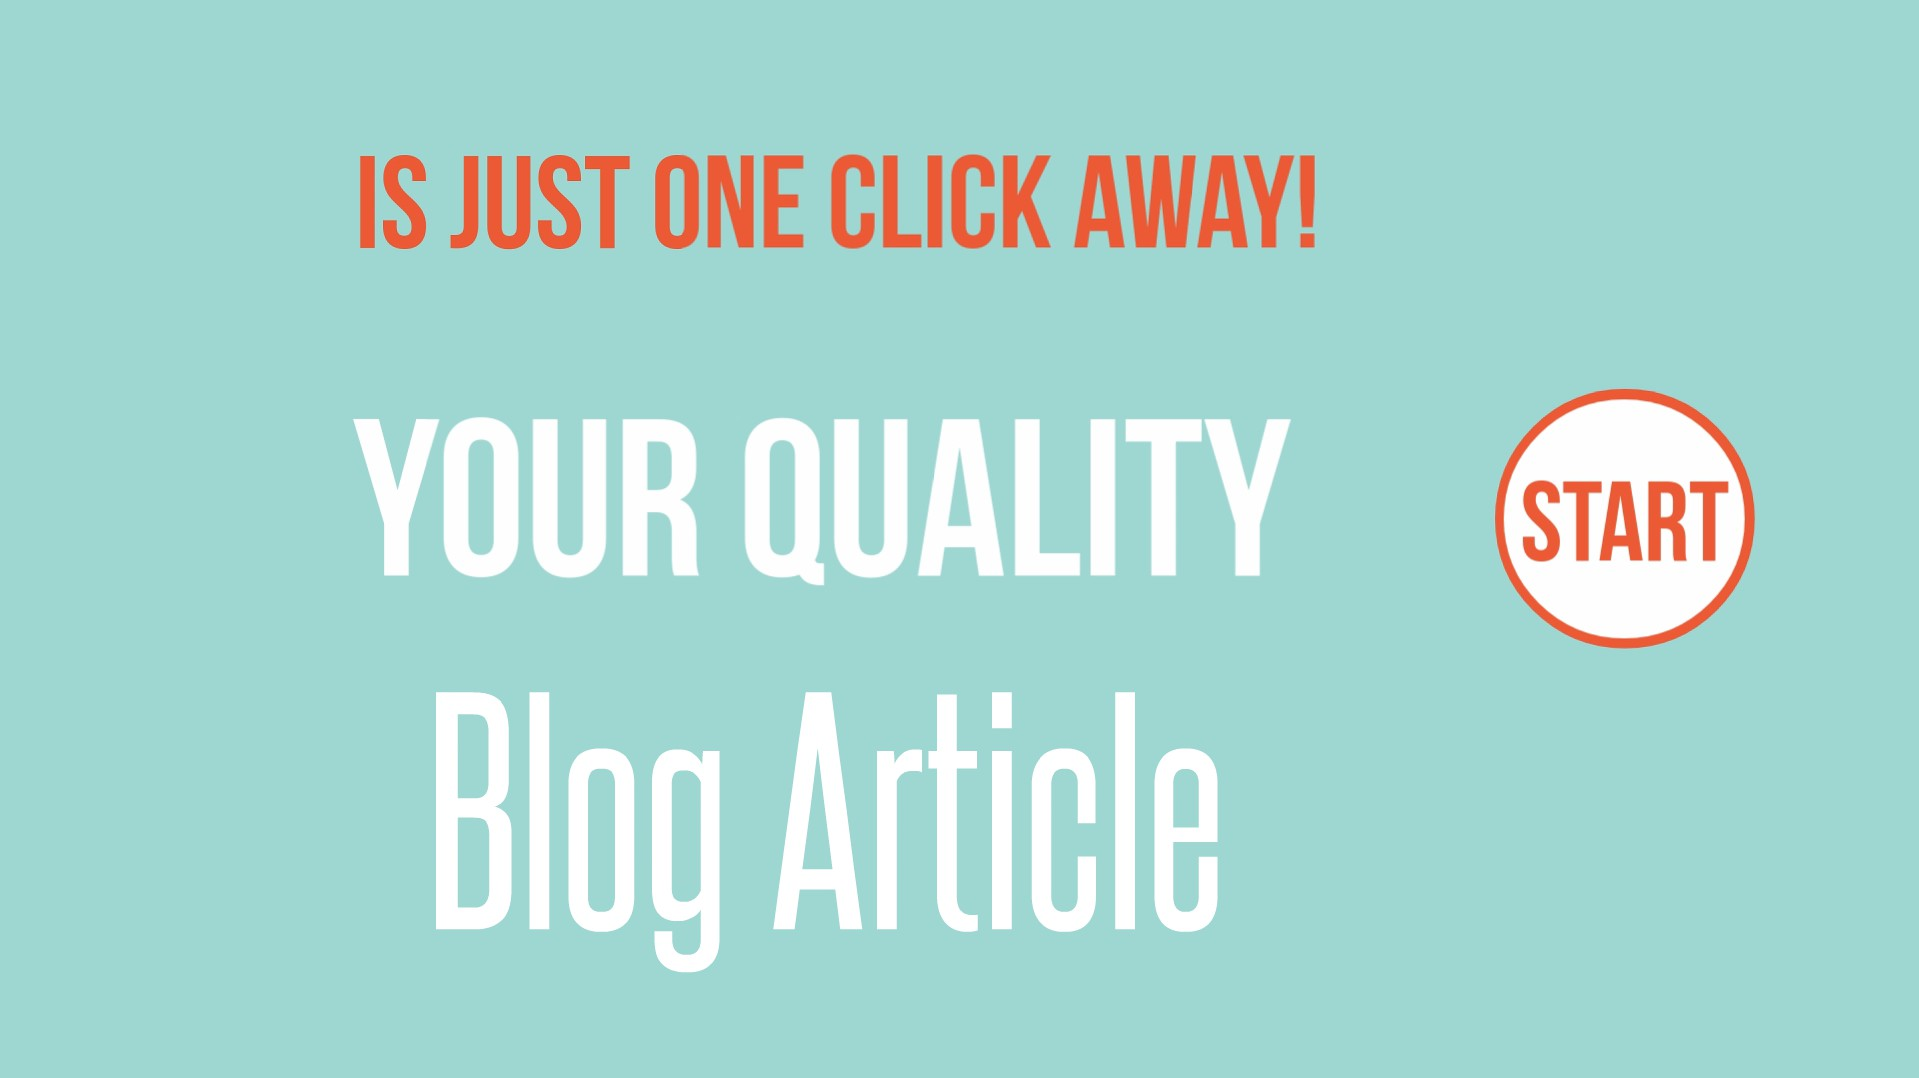 buy Blog Article